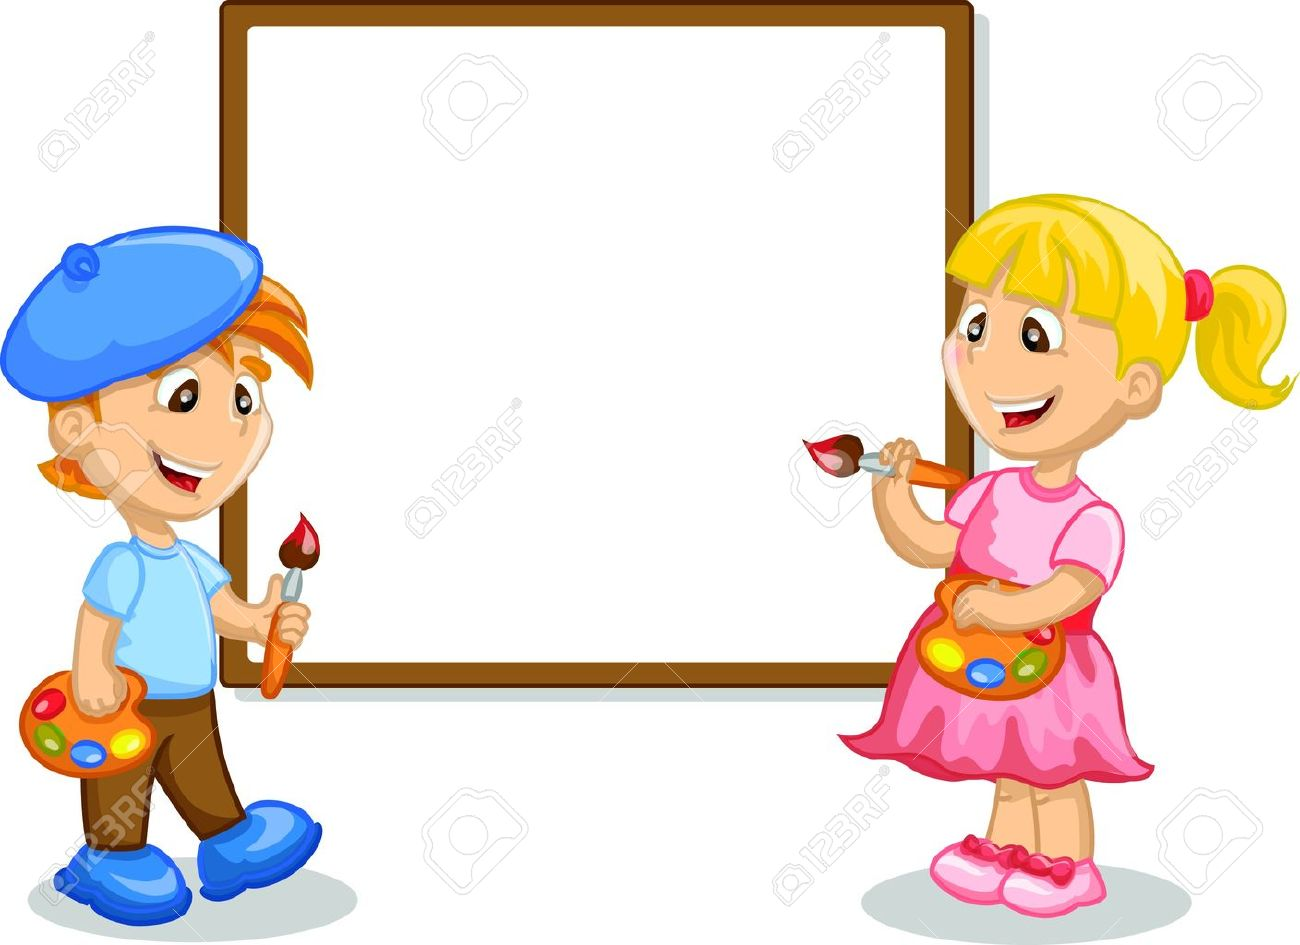 1300x945 Boy And Girl Drawing On The Easel Royalty Free Cliparts, Vectors